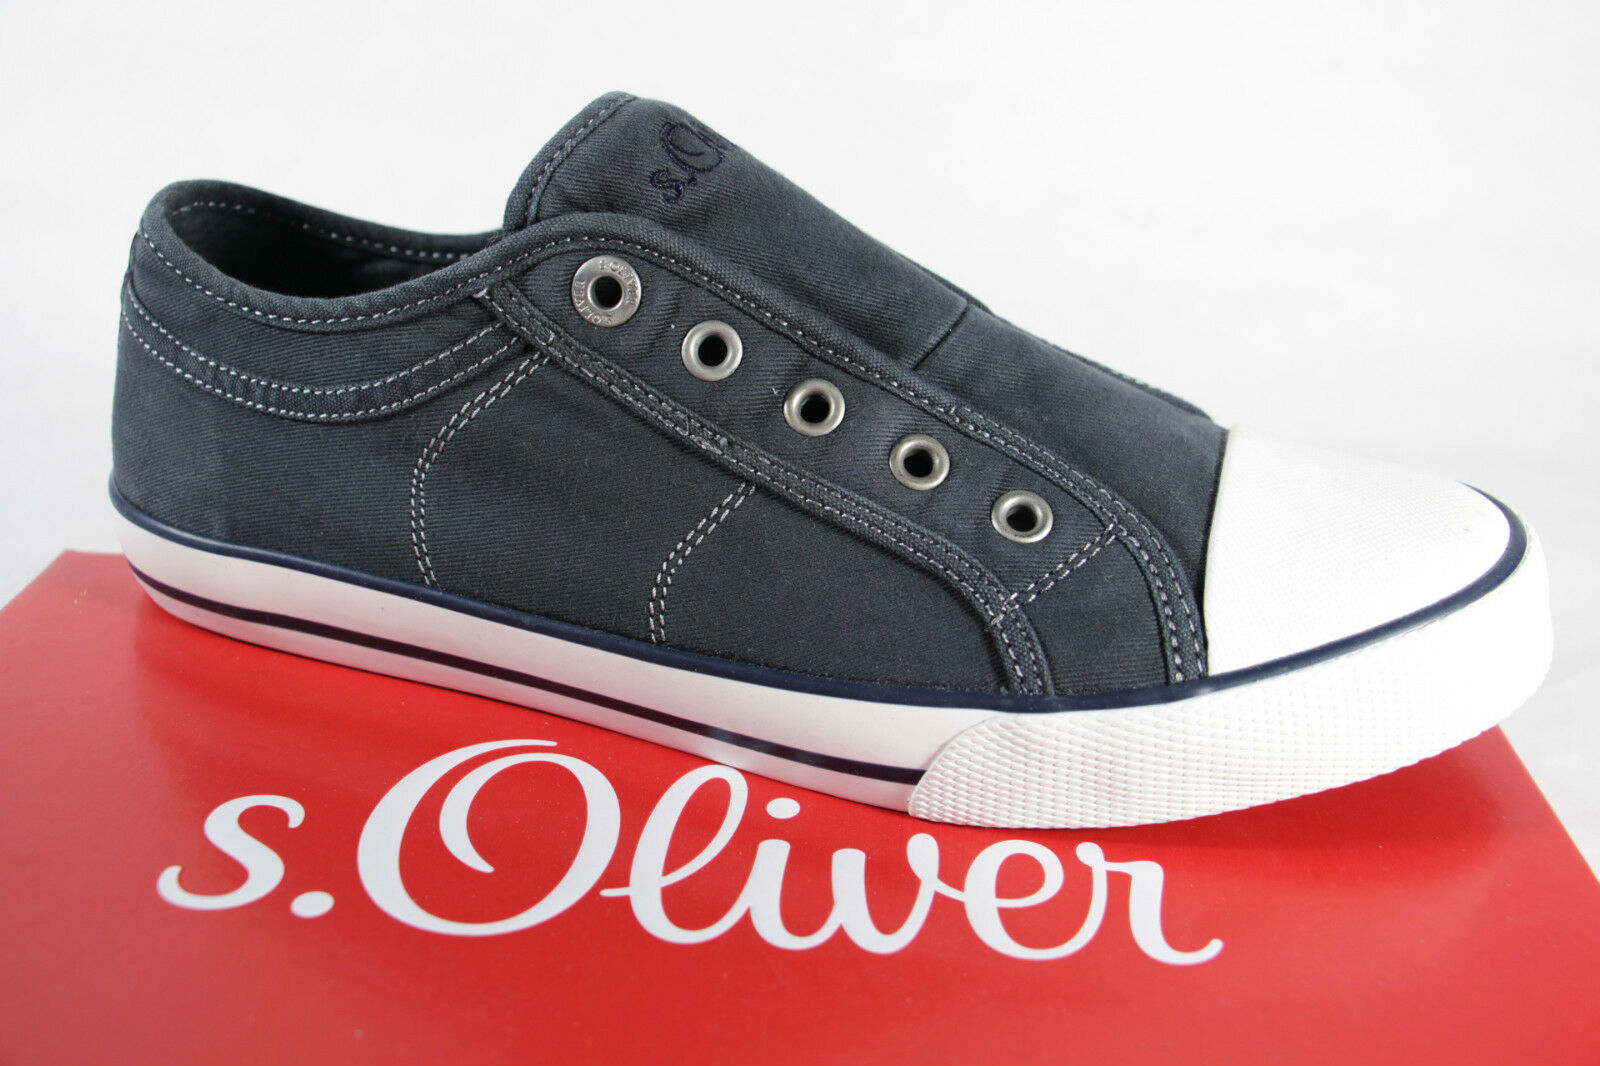 S.Oliver PANTOFOLA SNEAKERS BALLERINA 24635 blu jeans tessuto NUOVO NUOVO NUOVO 61a50a